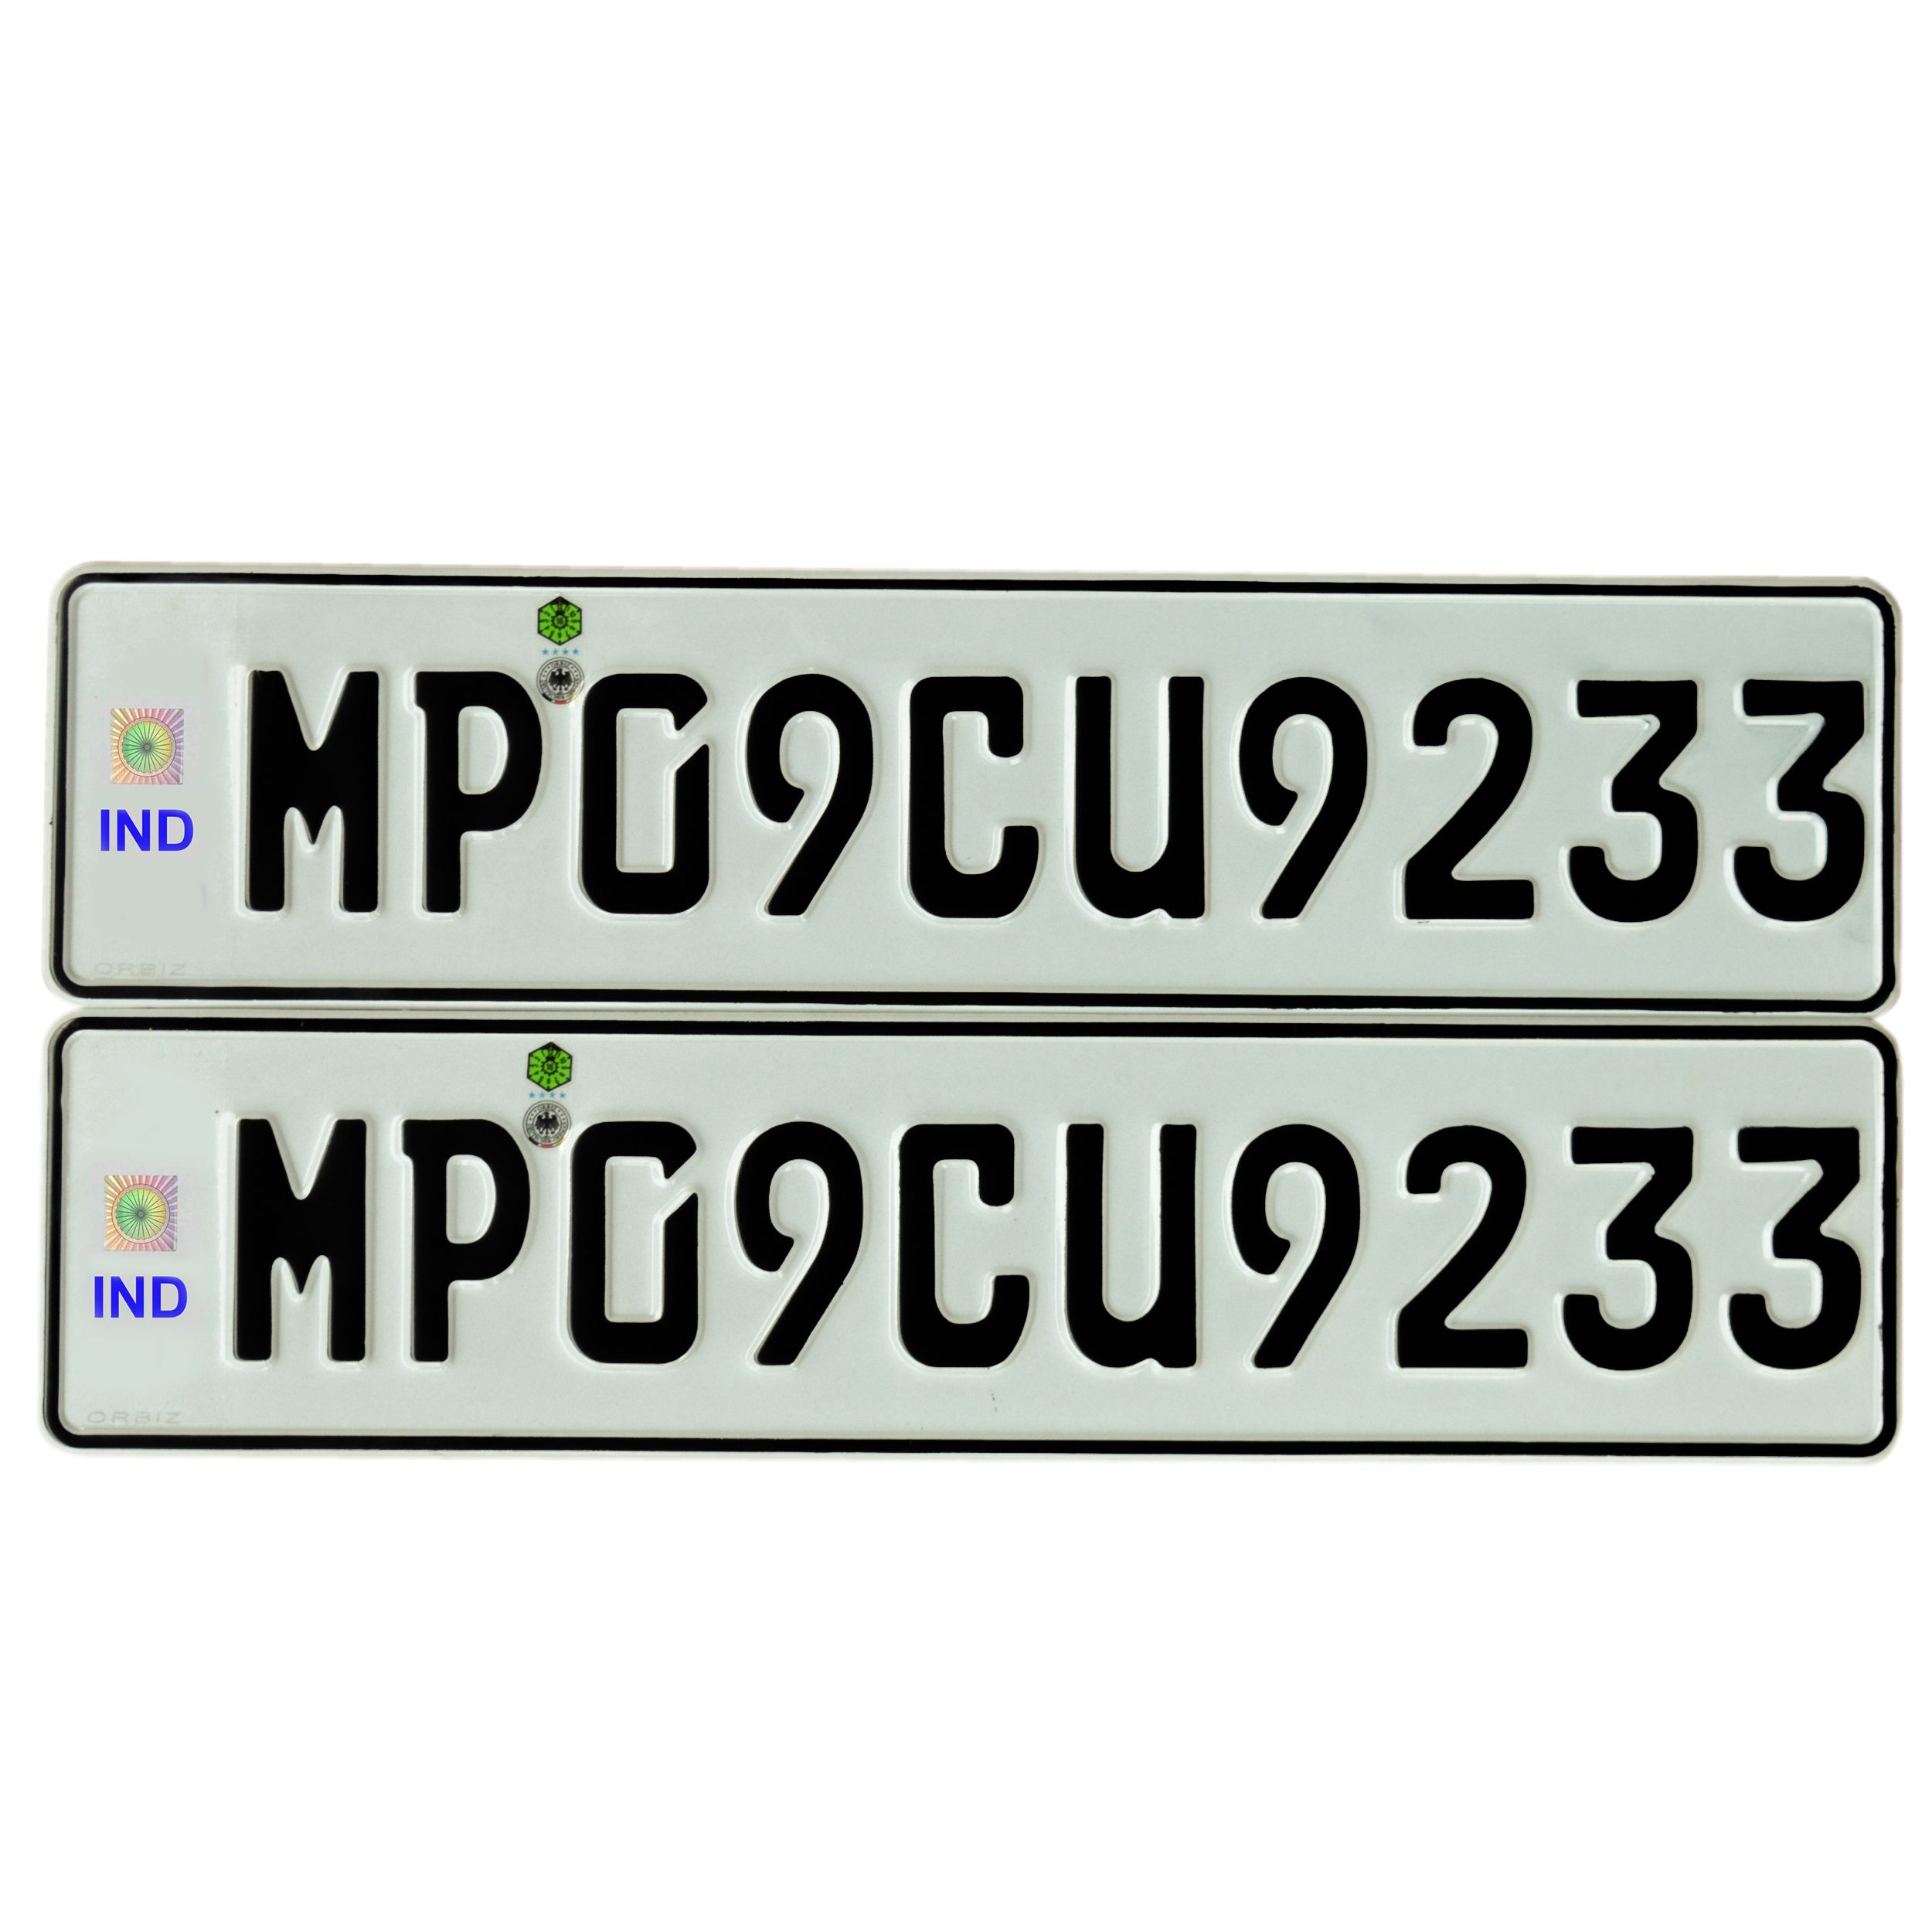 Pin by Orbiz Number plates on Car Number plates designs | Pinterest ...